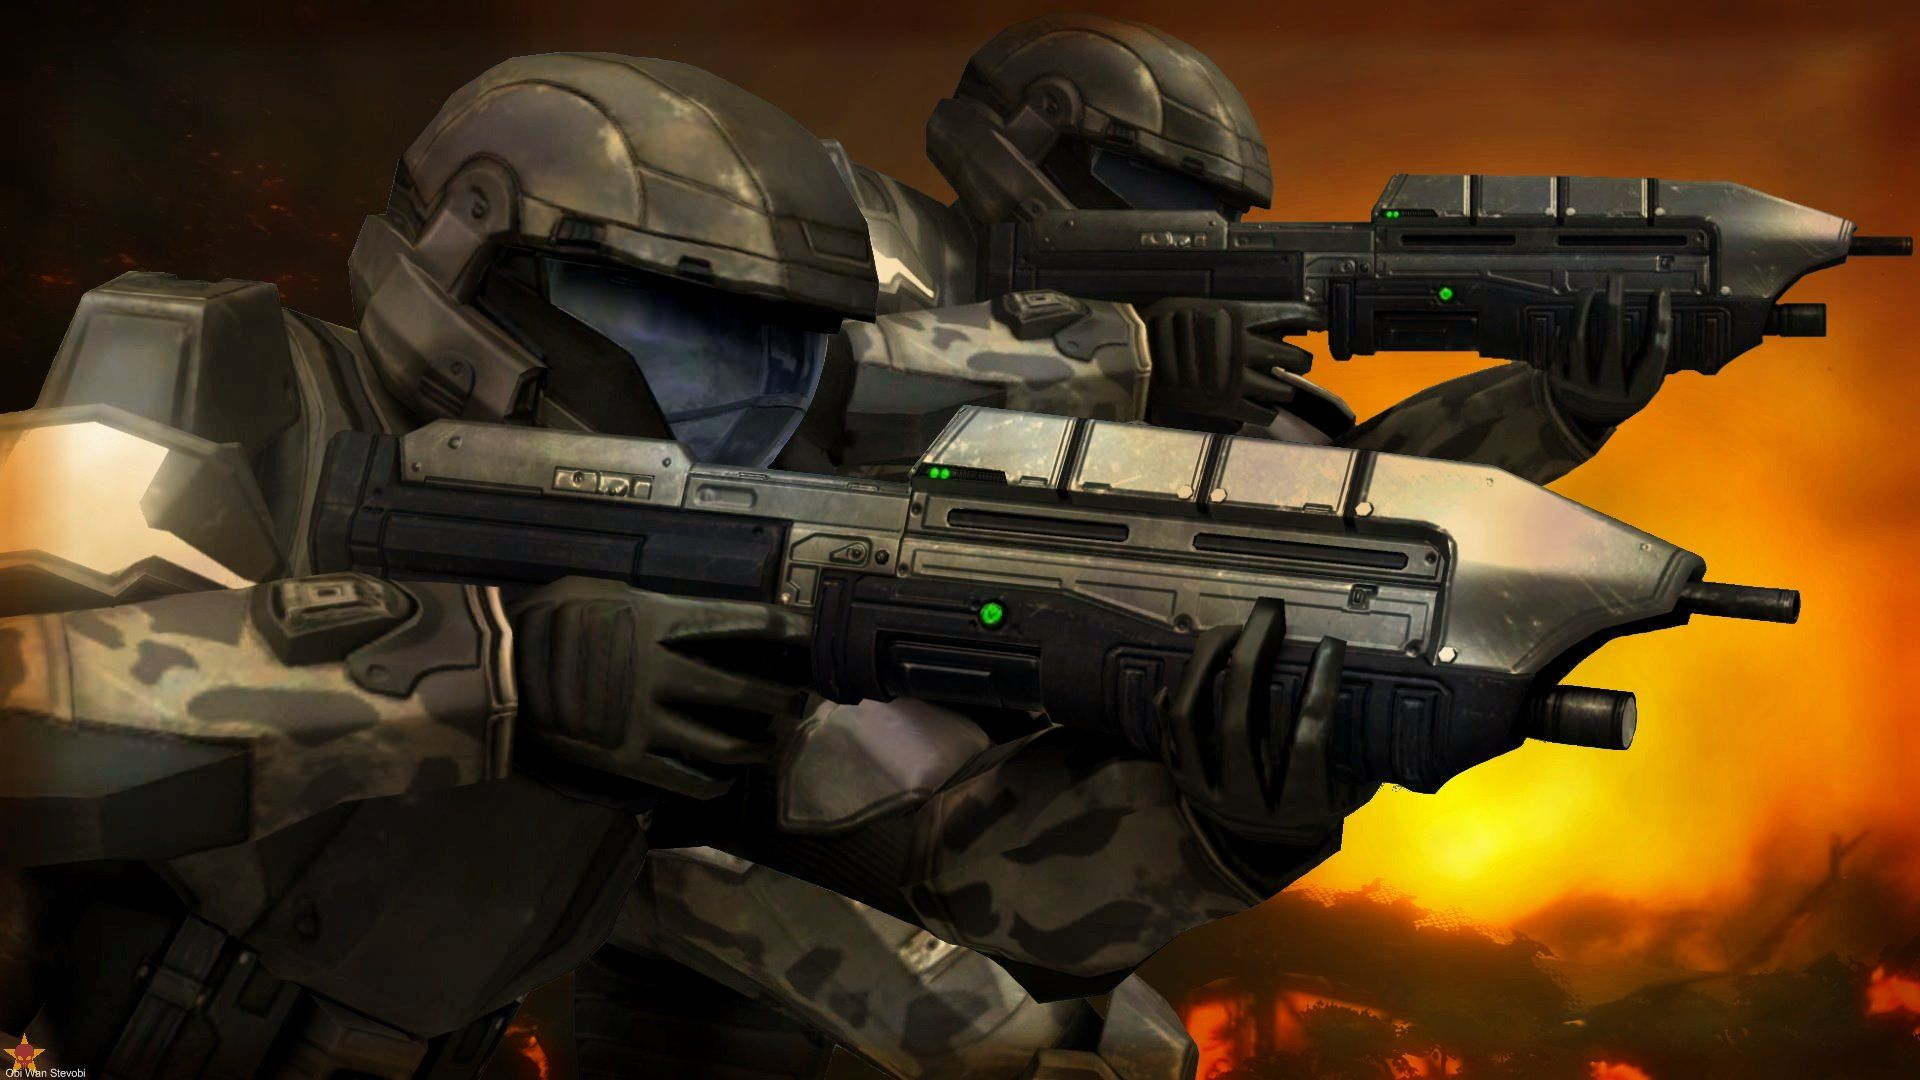 Undefined halo 3 odst wallpapers 47 wallpapers adorable undefined halo 3 odst wallpapers 47 wallpapers adorable wallpapers voltagebd Choice Image